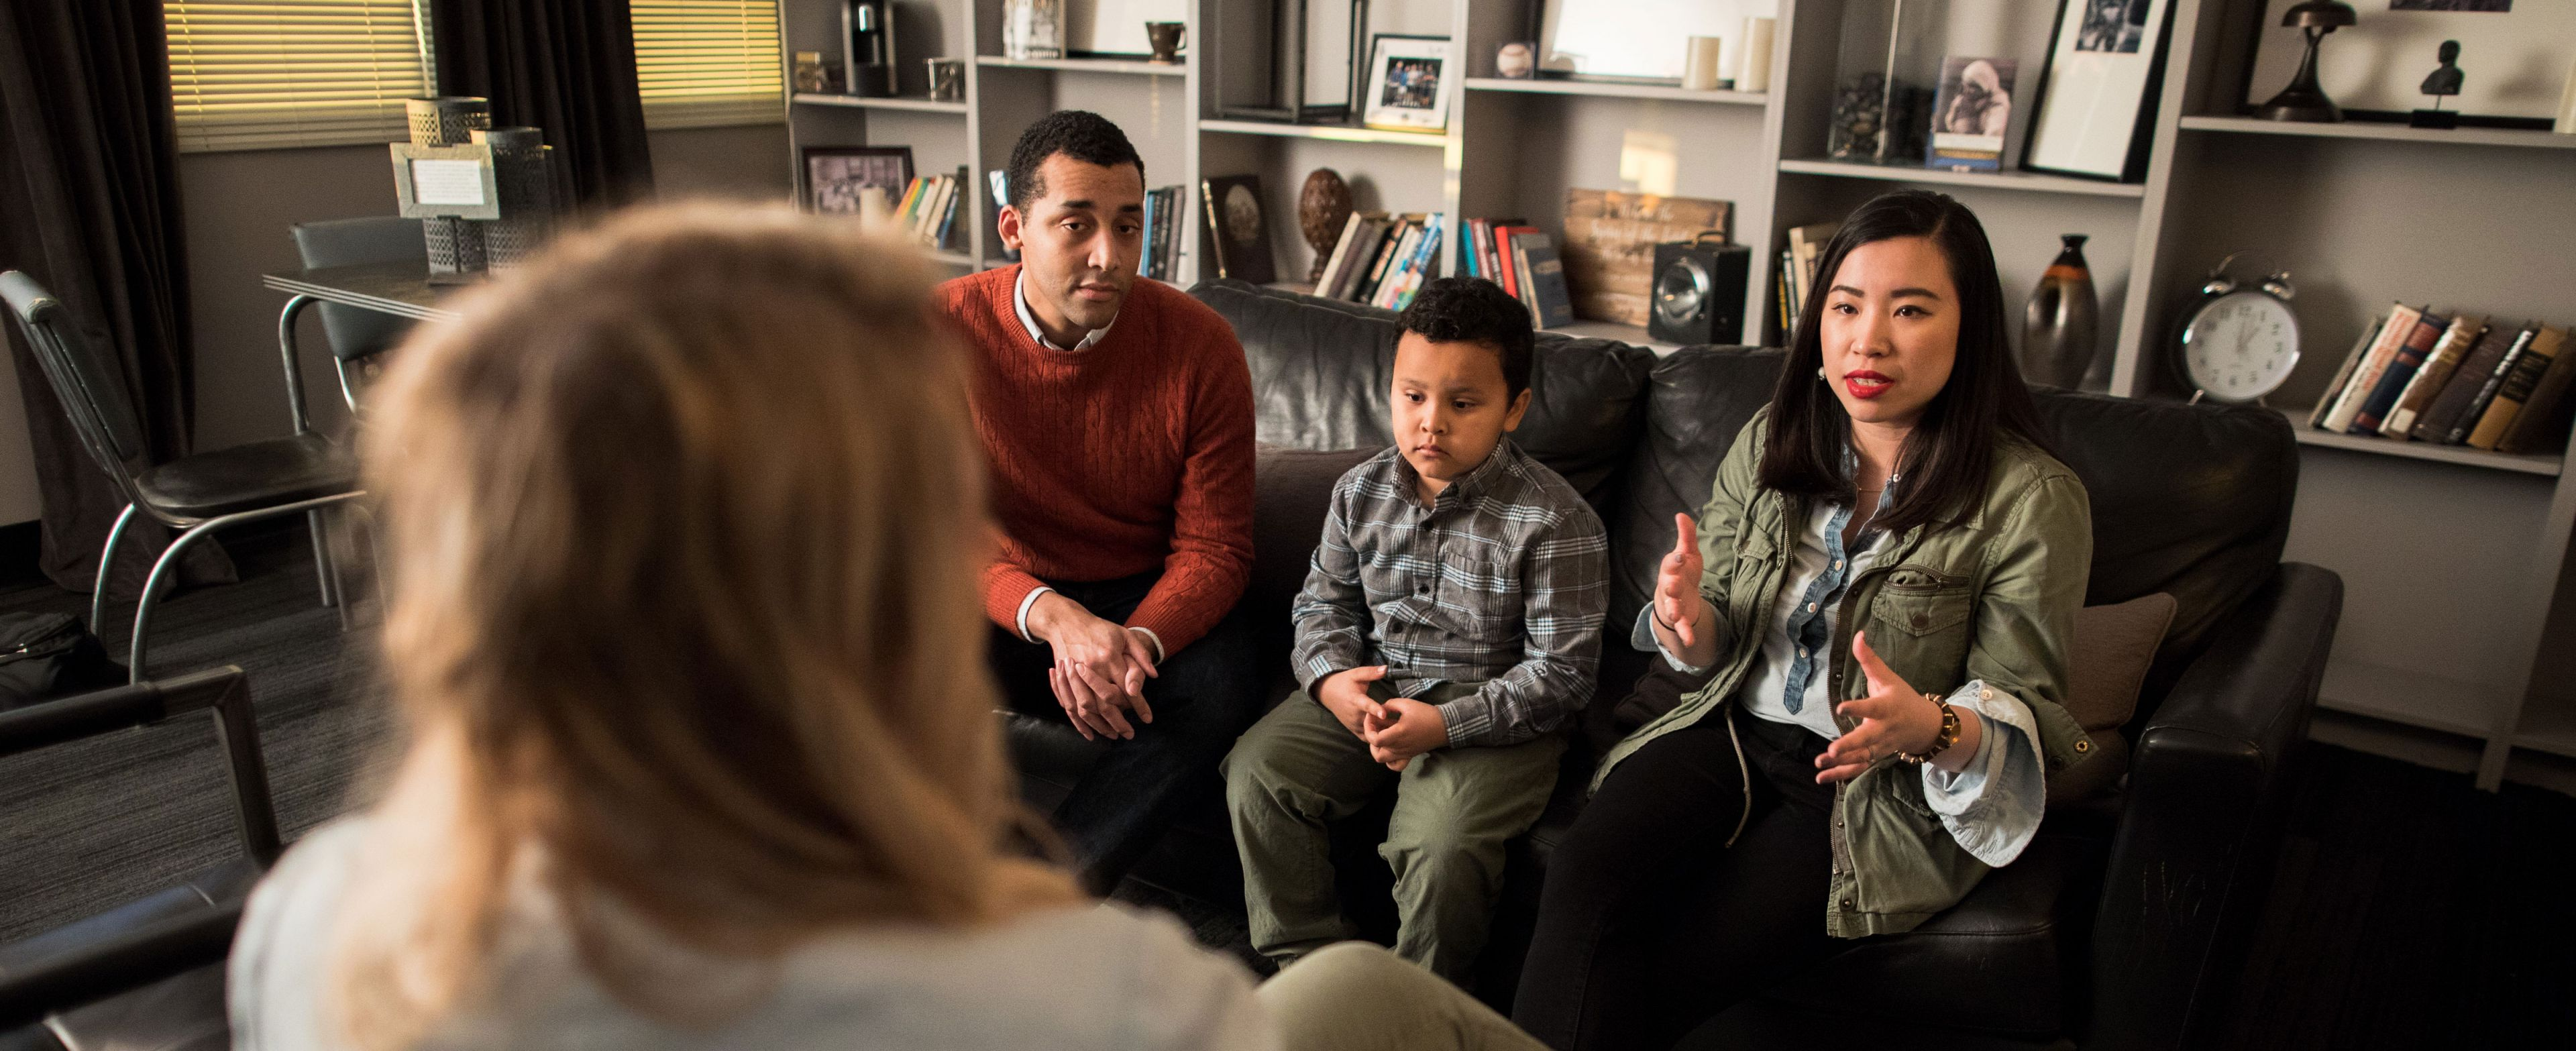 Master of Arts in Marriage & Family Therapy | MFT Degree